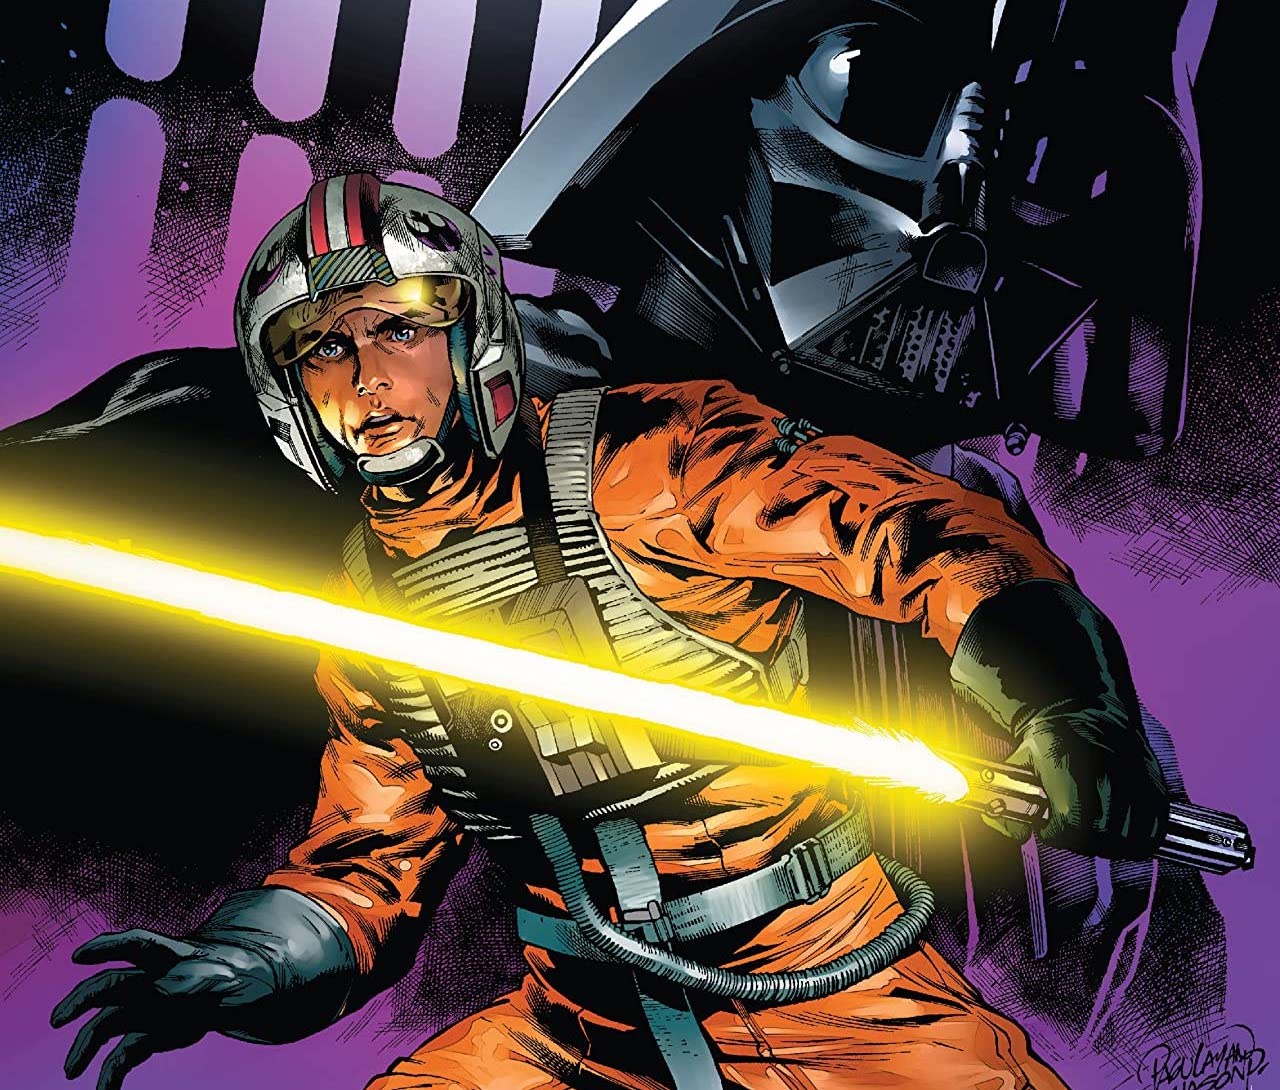 'Star Wars' #16 shows Luke Skywalker is not ready to face Darth Vader